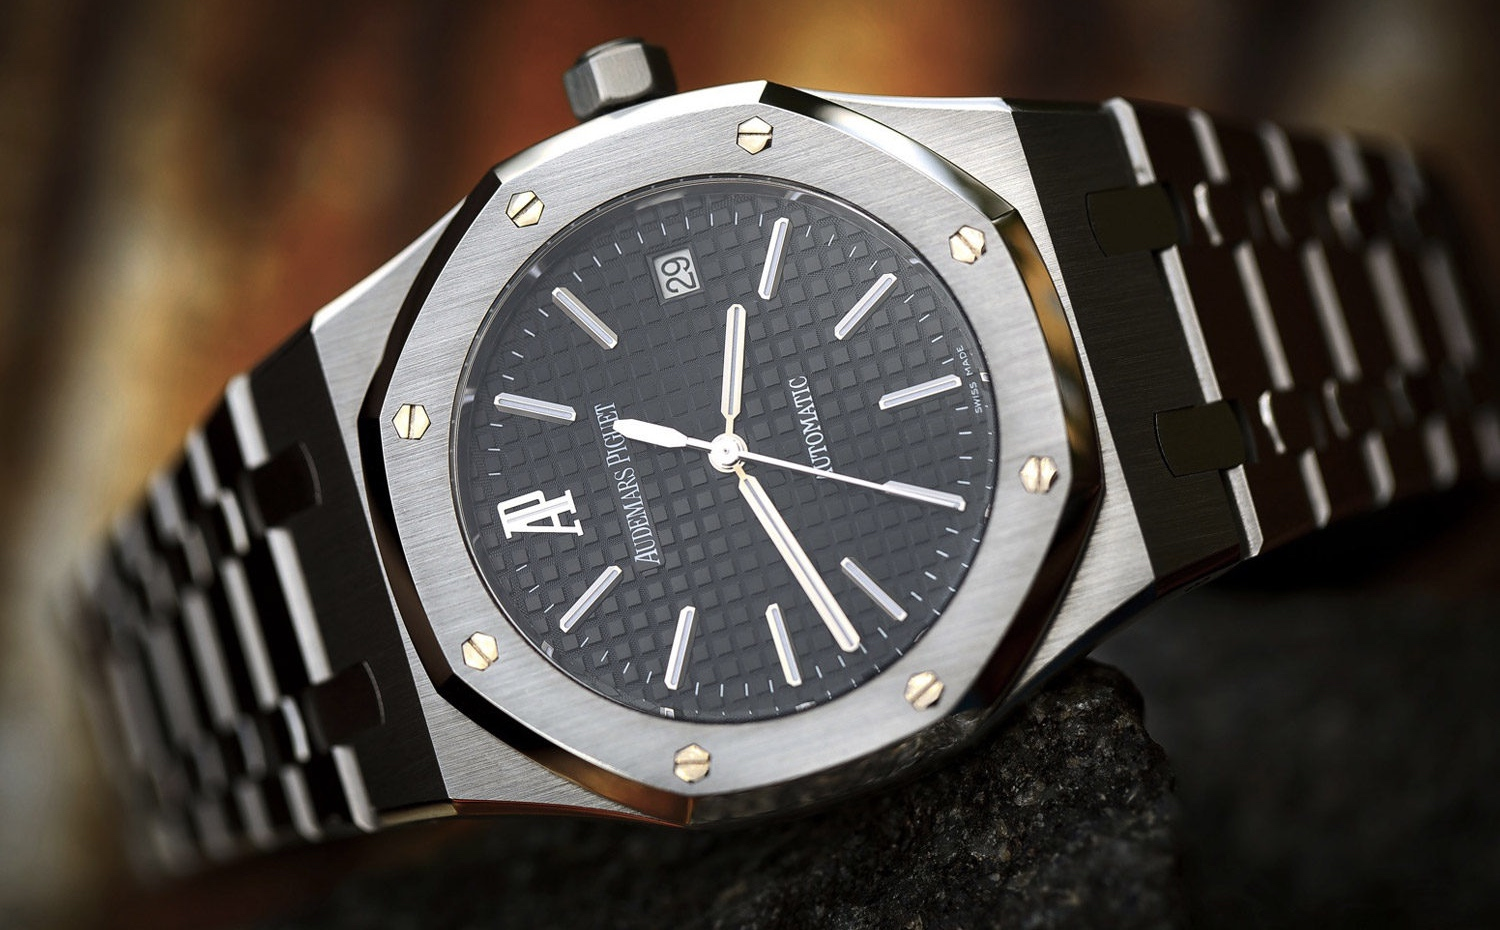 Audemars Piguet Royal Oak Ref. 15300ST